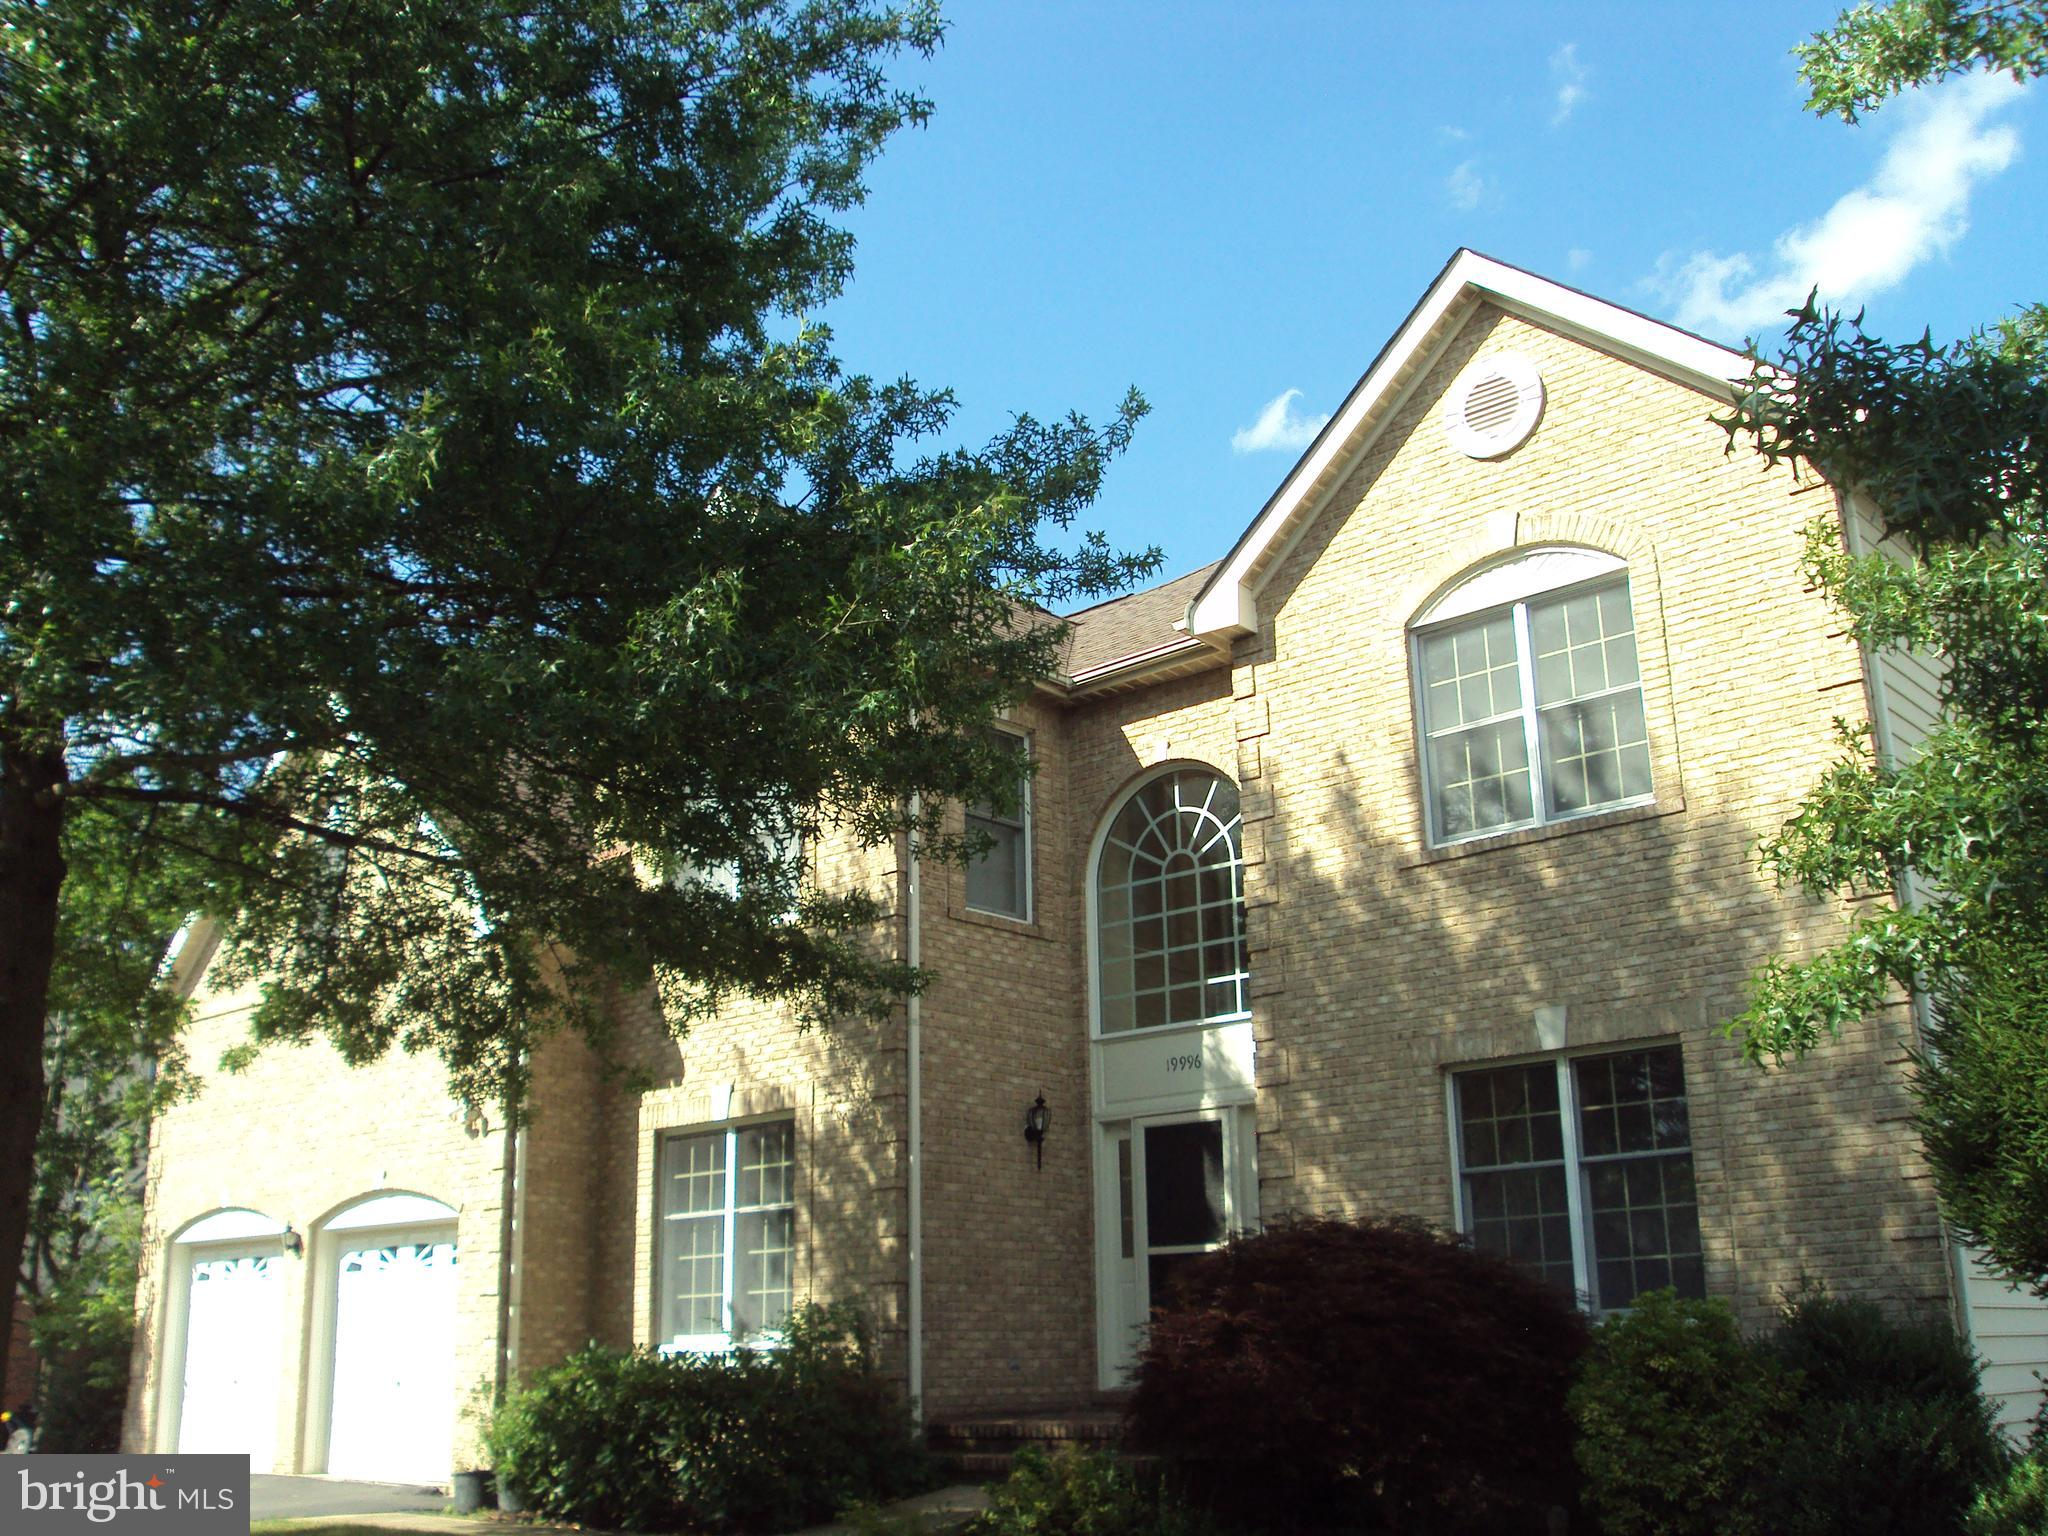 Belmont Country Club Amenities Include Full Lawn & Landscape Maintenance, High Speed Internet, Cable